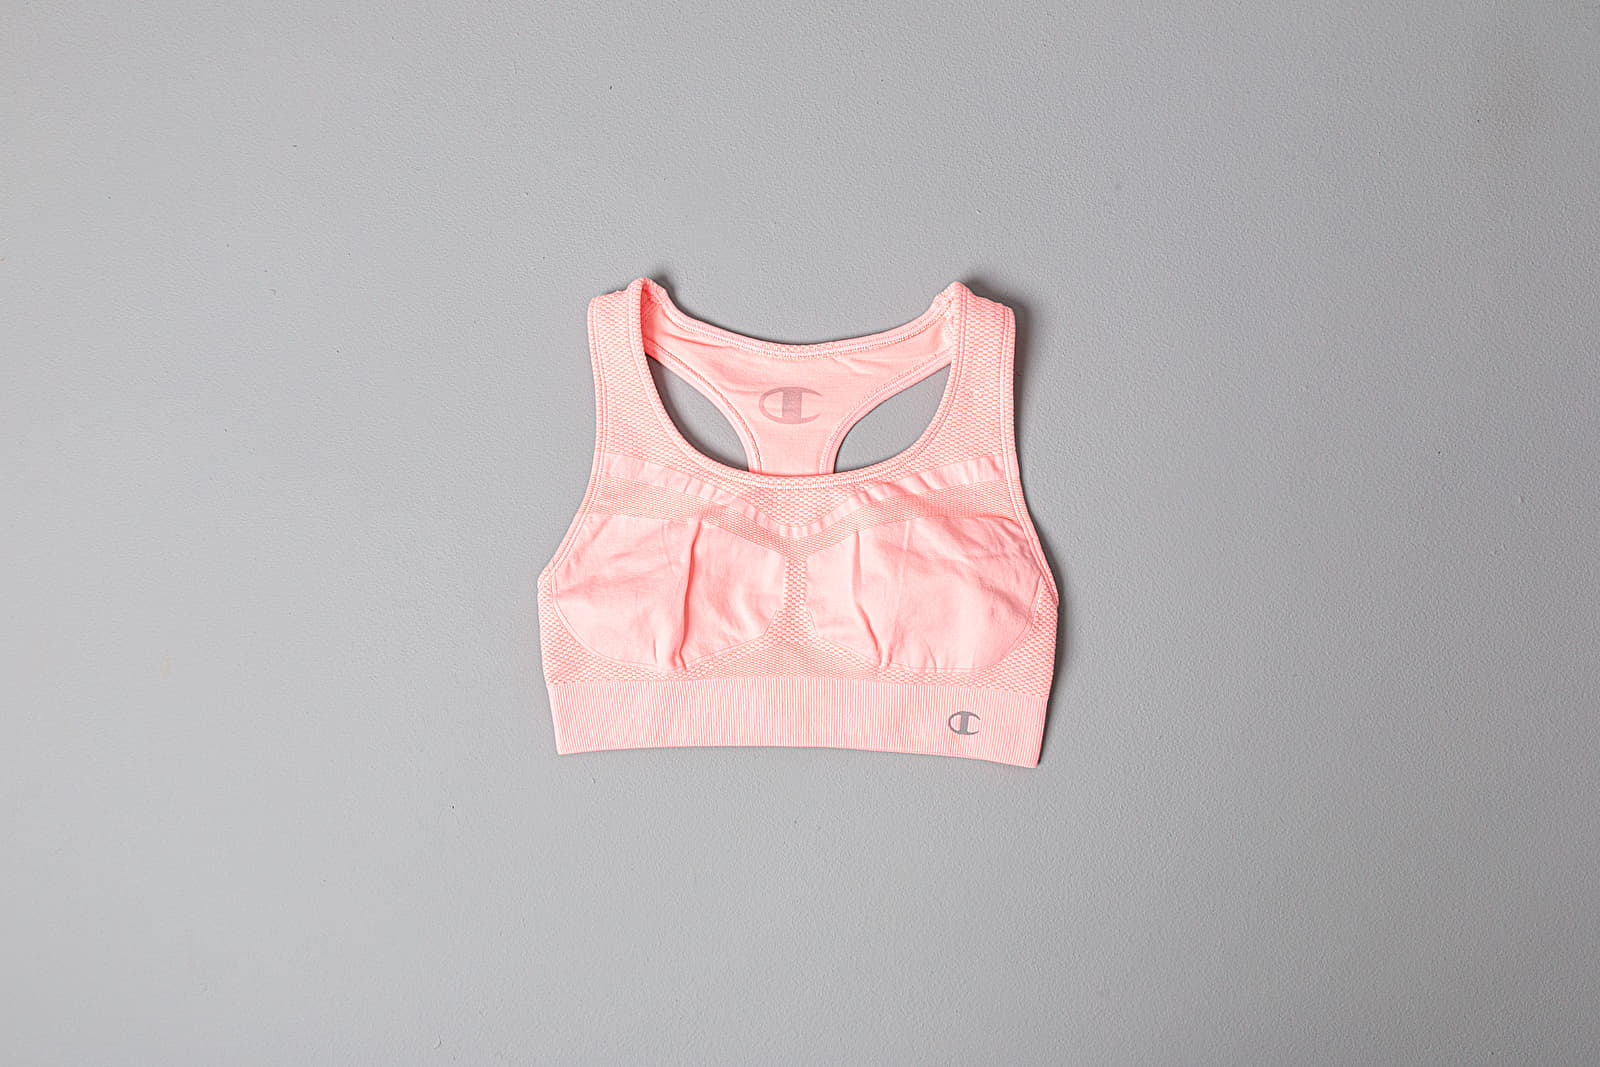 Champion Seamless The Freedom Crop Top Bra